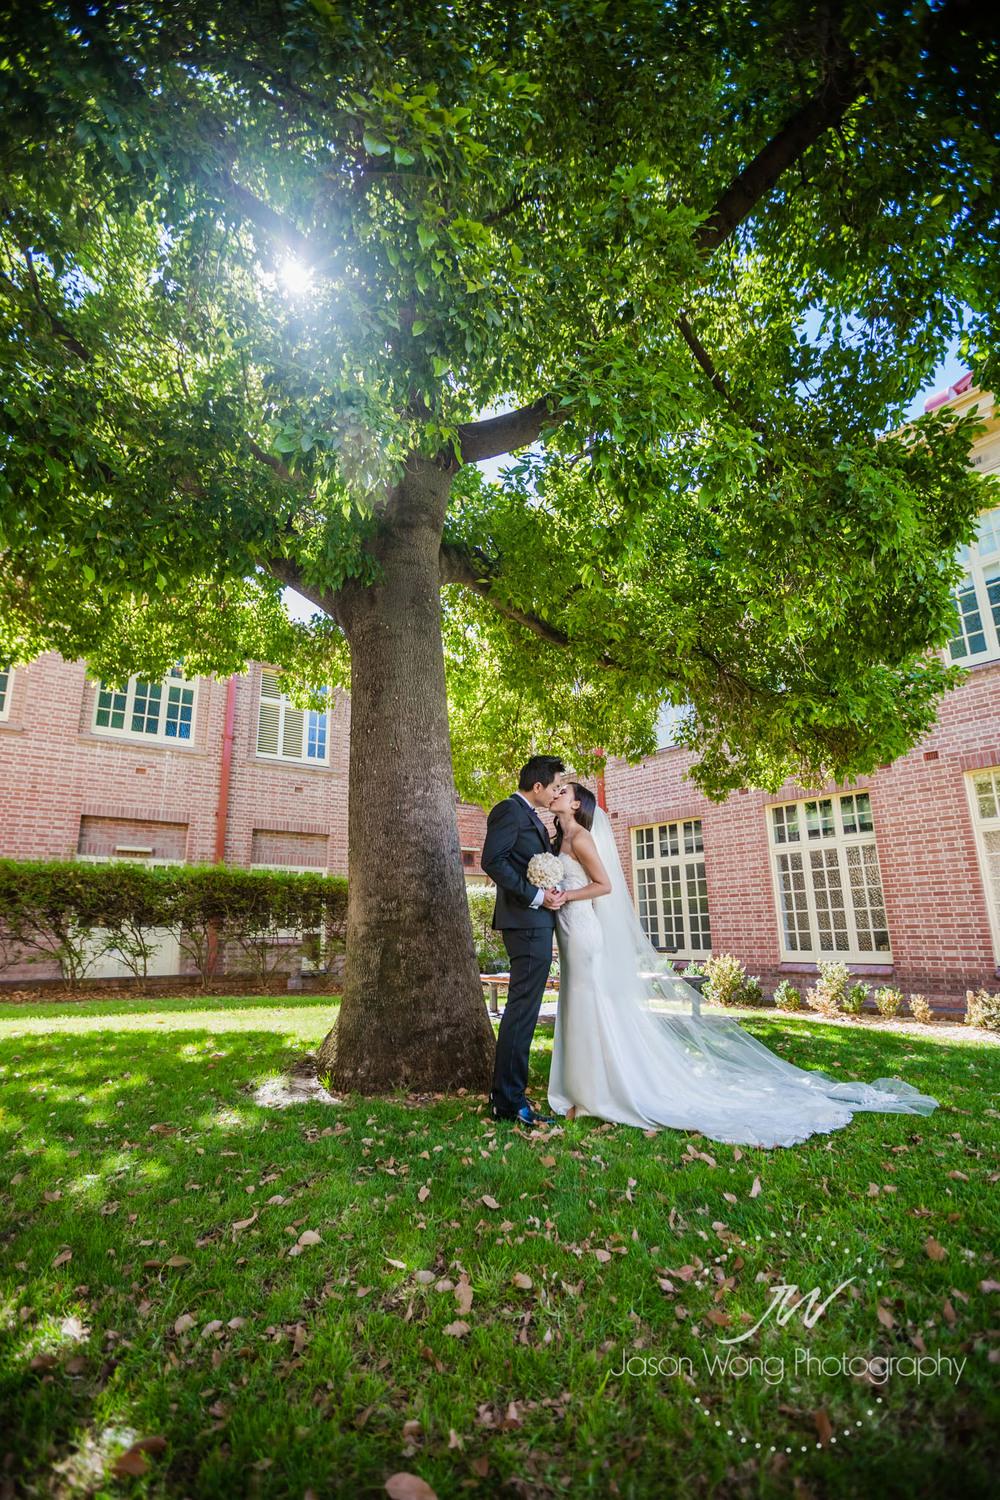 tree-so-green-and-newlyweds-so-sweet.jpg